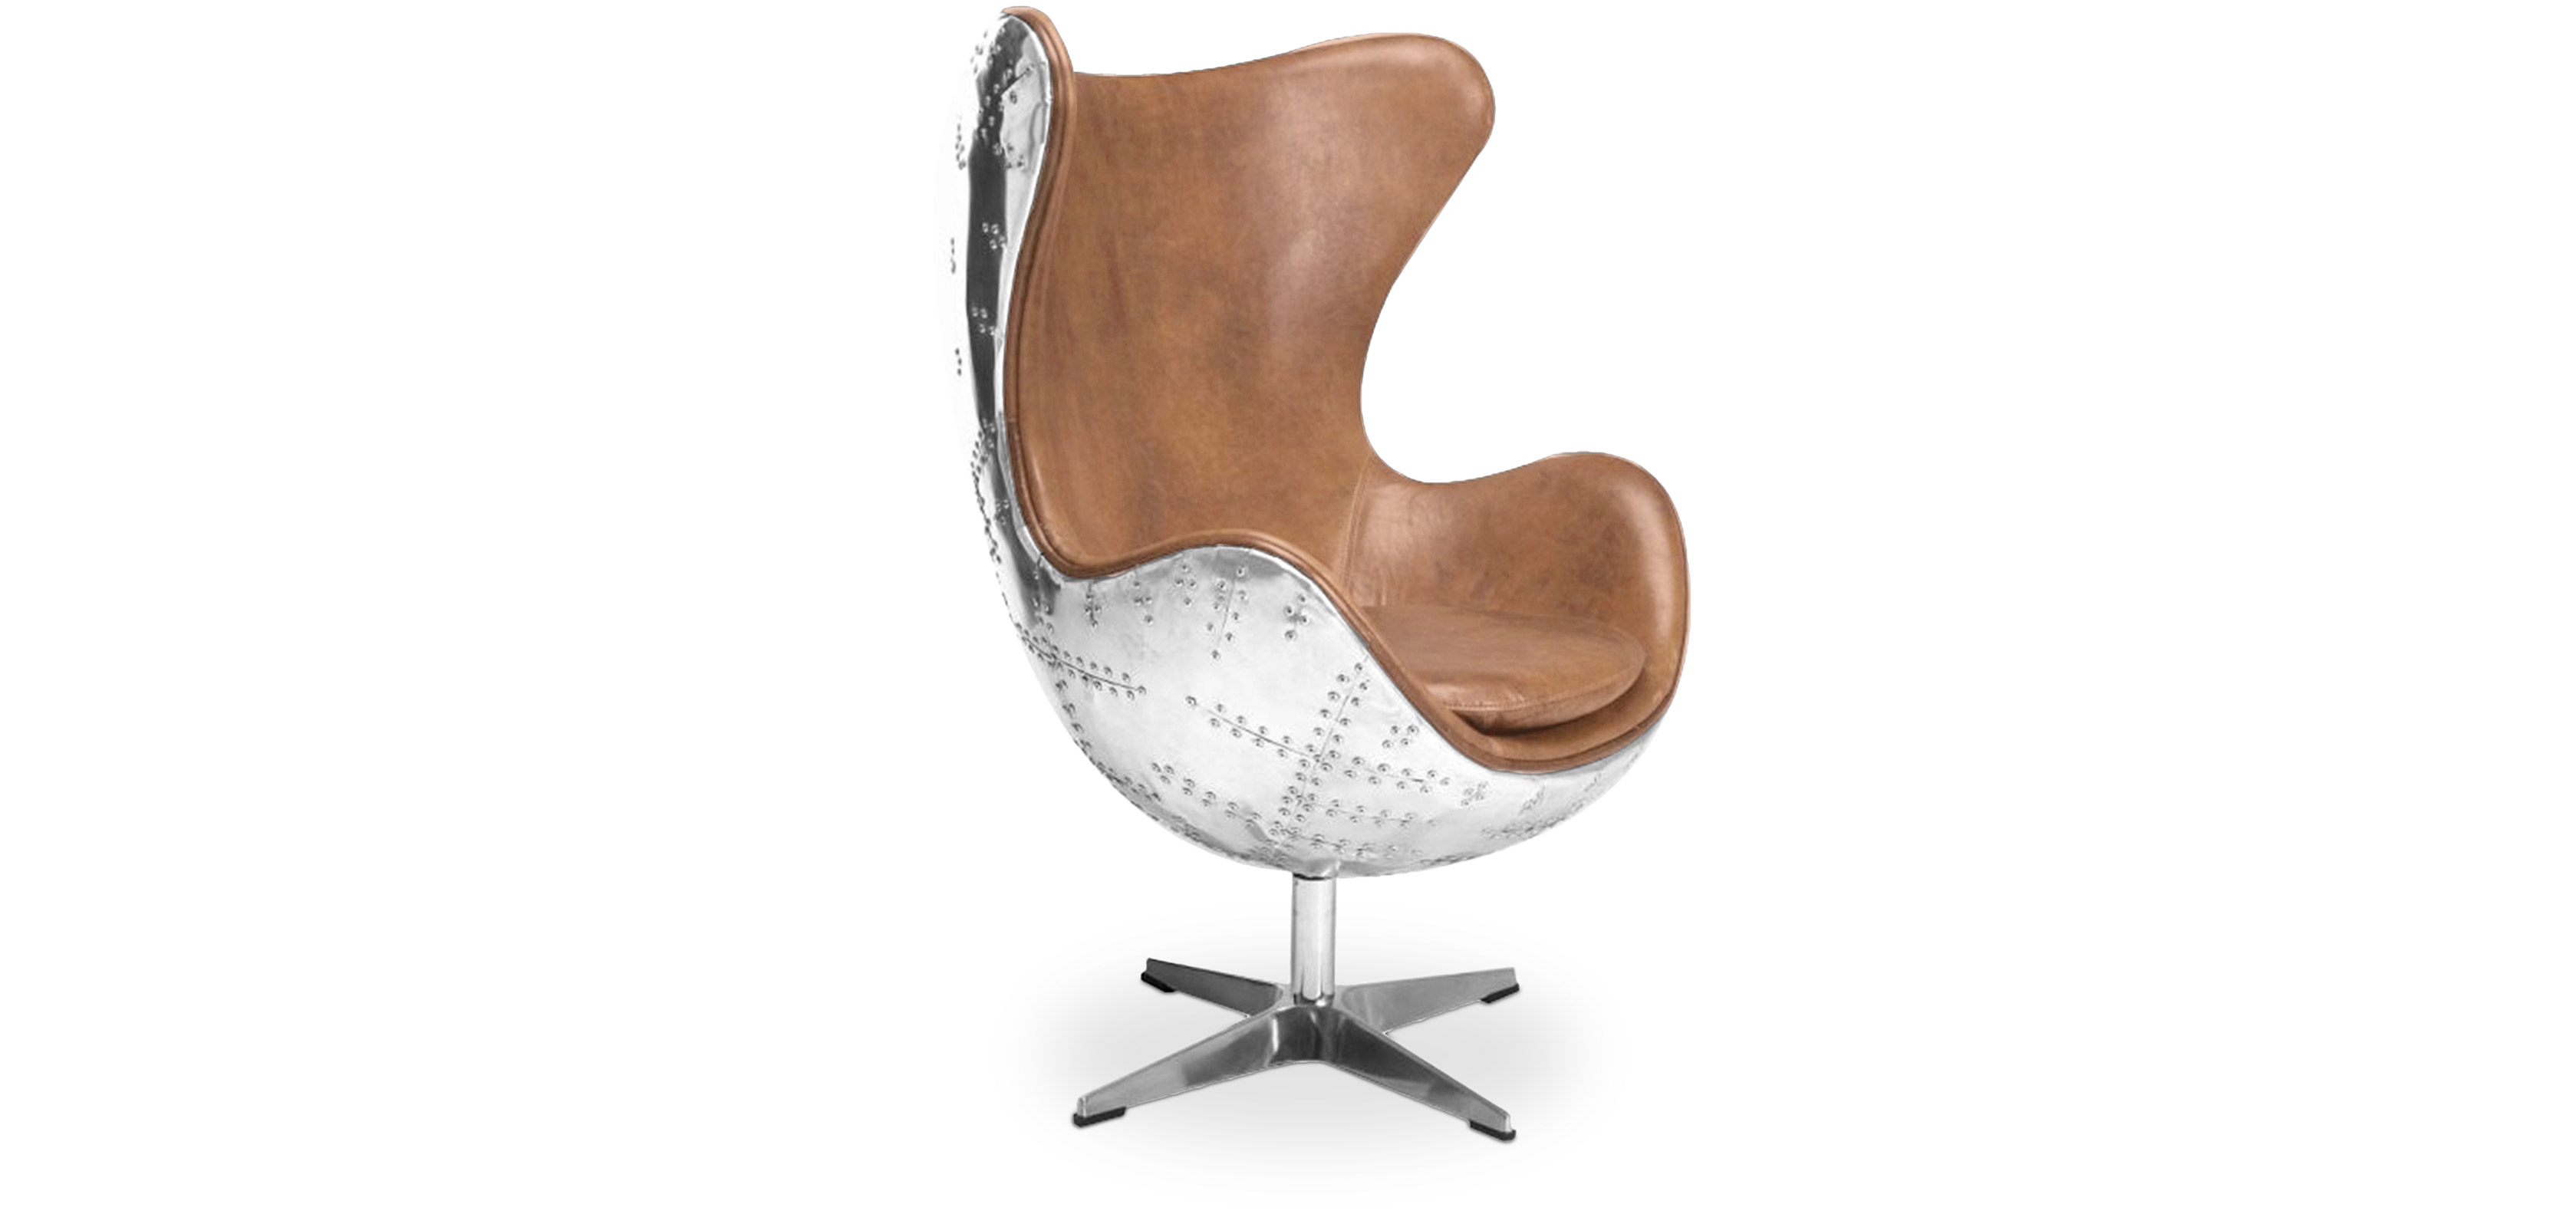 Sessel Aviator Egg Chair Aviator Sessel Hochwertiges Leder